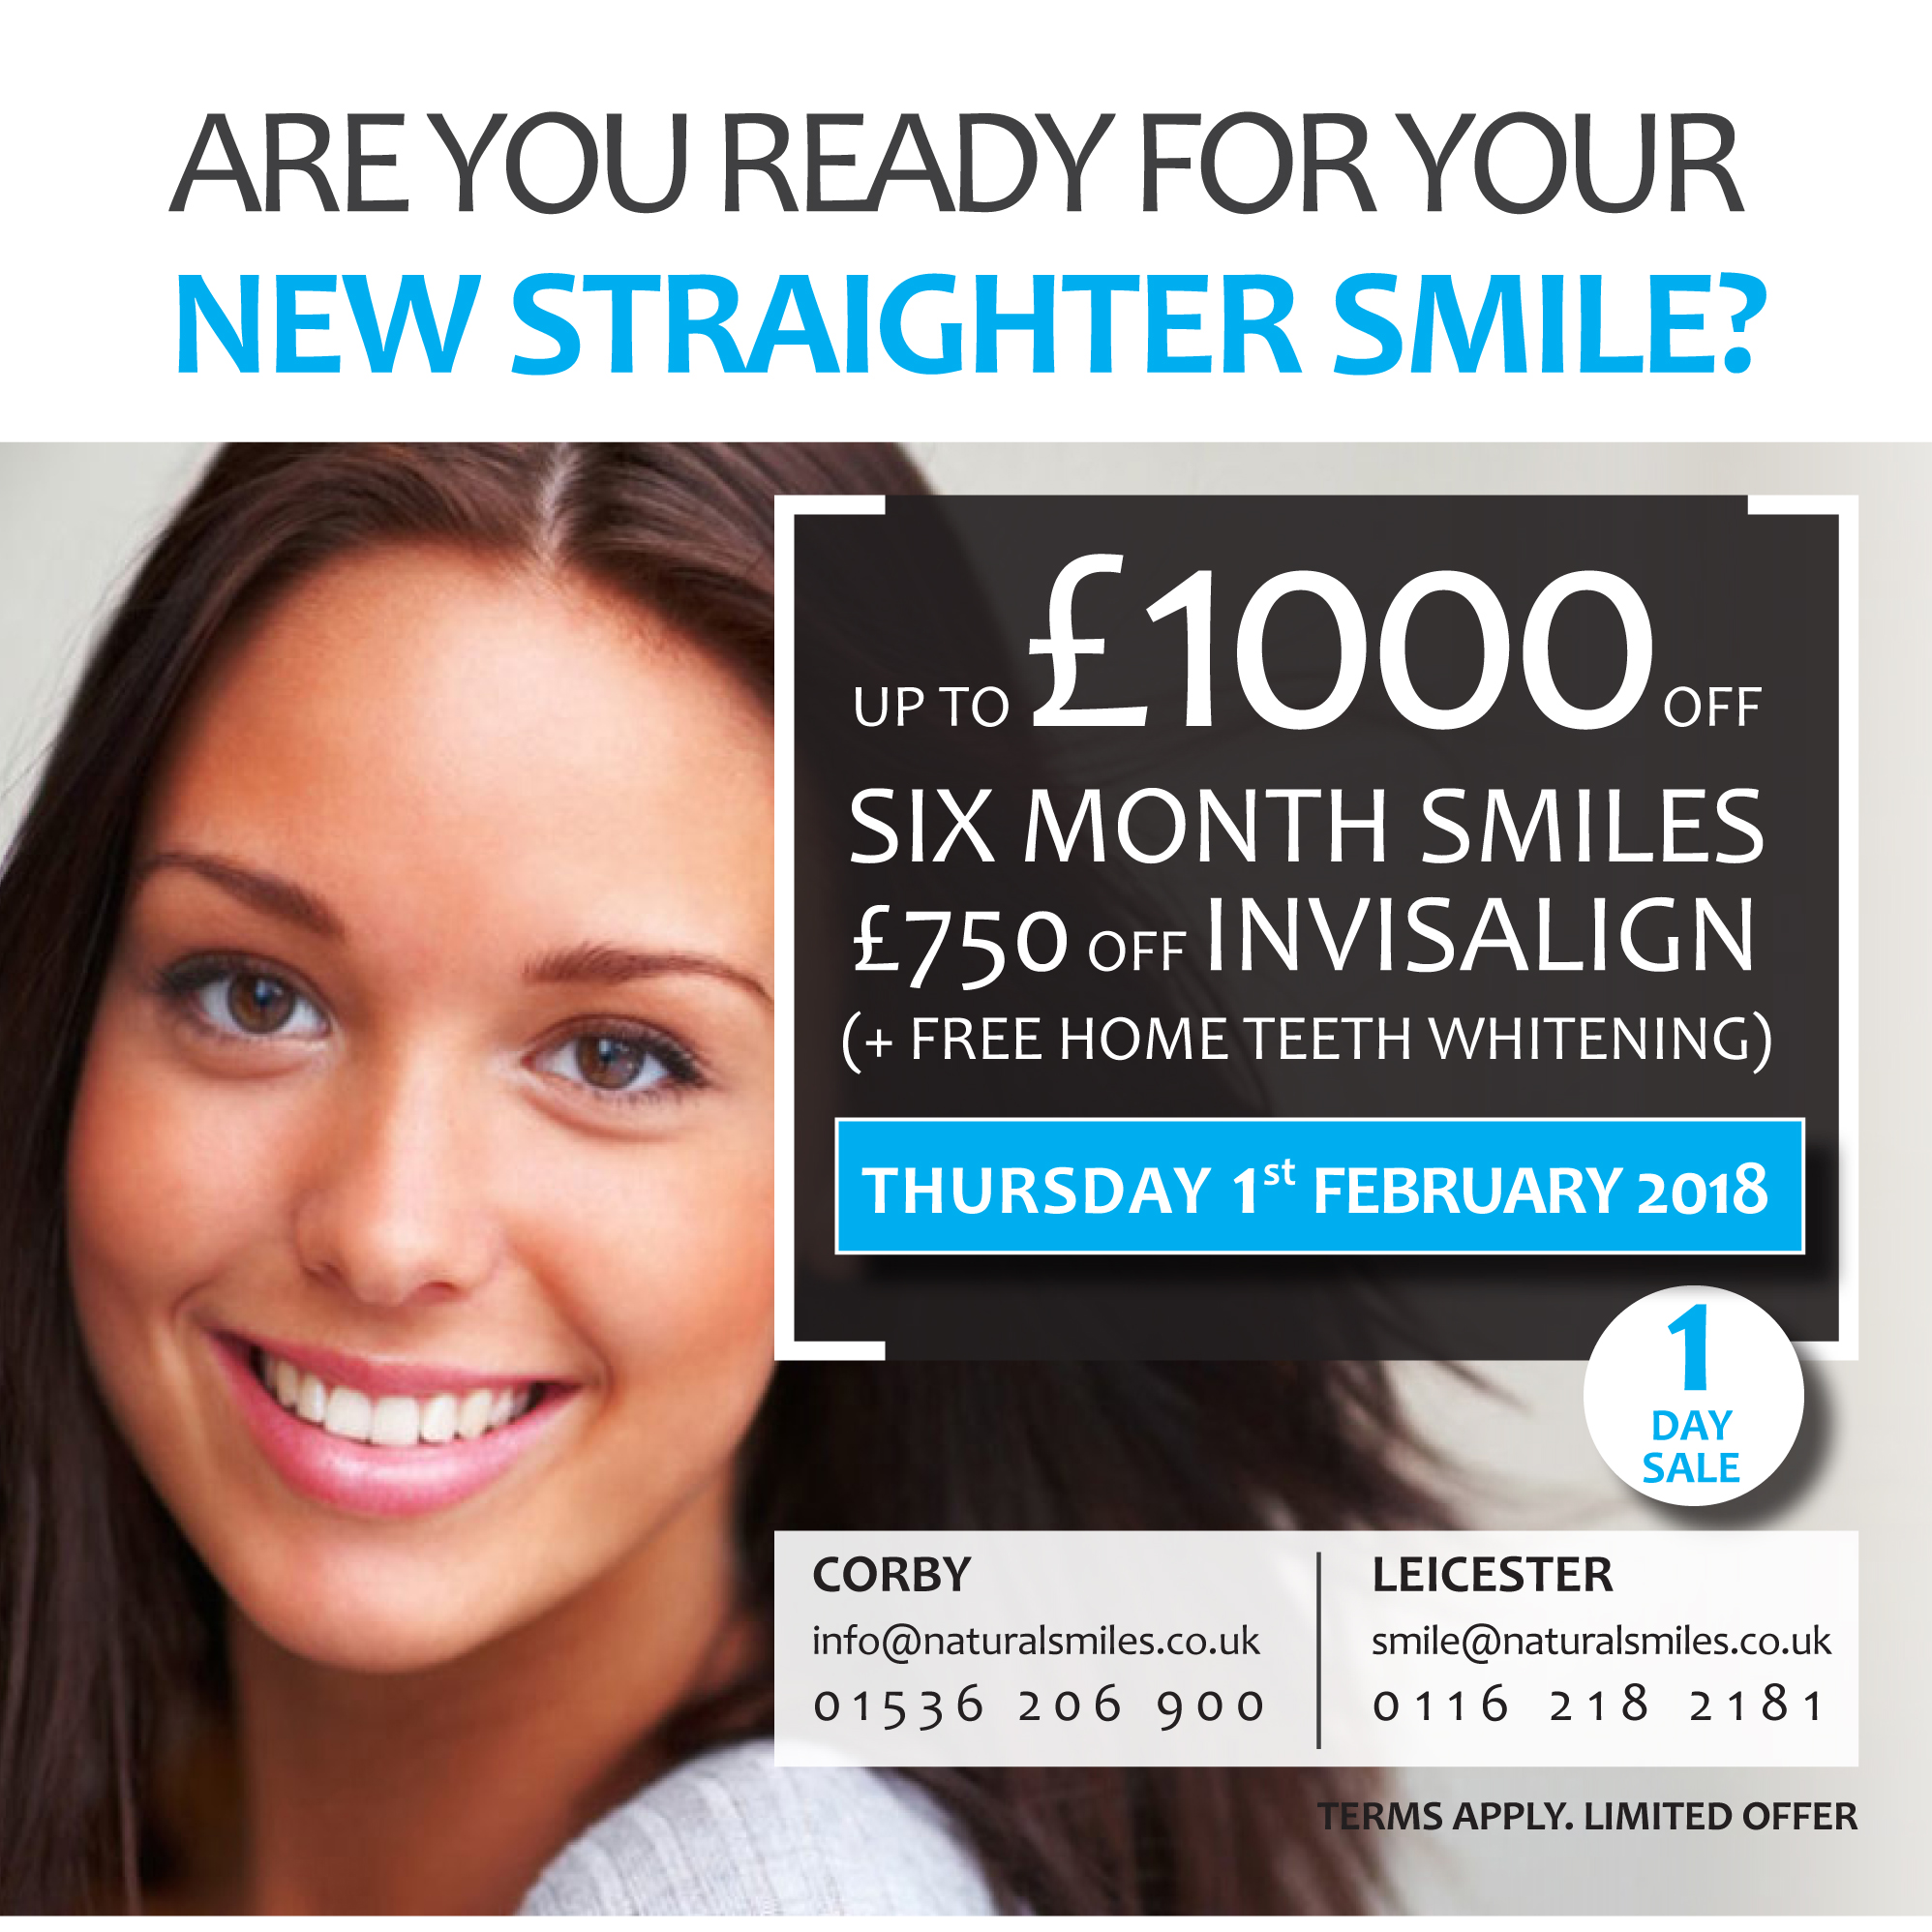 Up to £1000 OFF - 1st February 2018 - NaturalSmiles